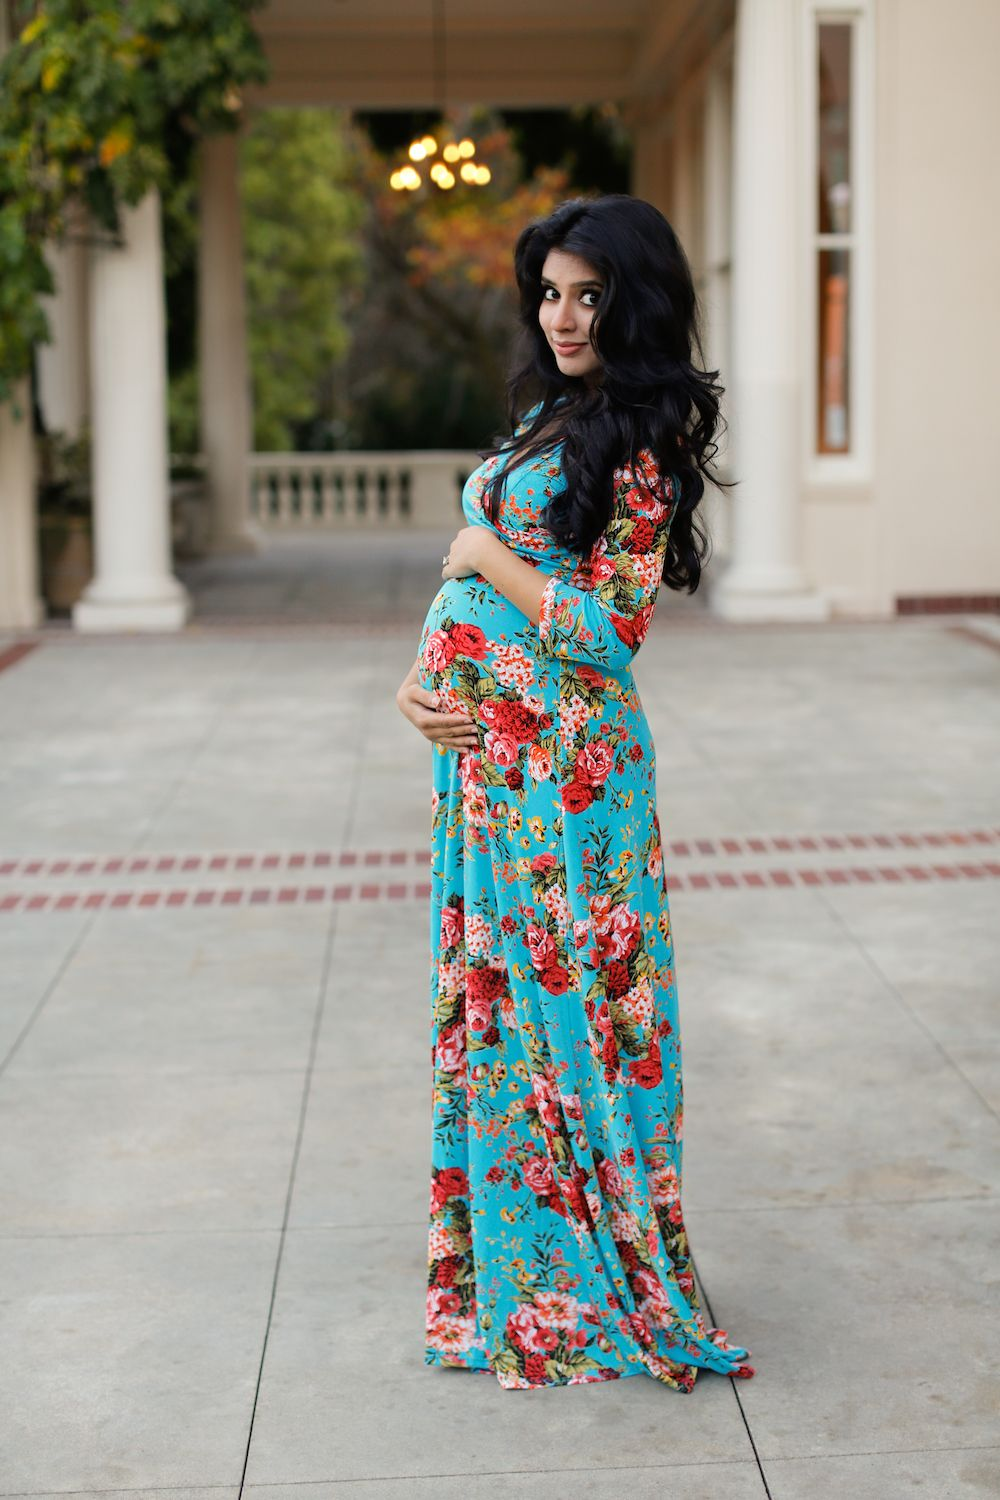 c44bf7a812199 Who says maternity dresses have to be boring? This Aqua Floral Wrap Dress  from Pink Blush Maternity is sooo comfortable and stylish!